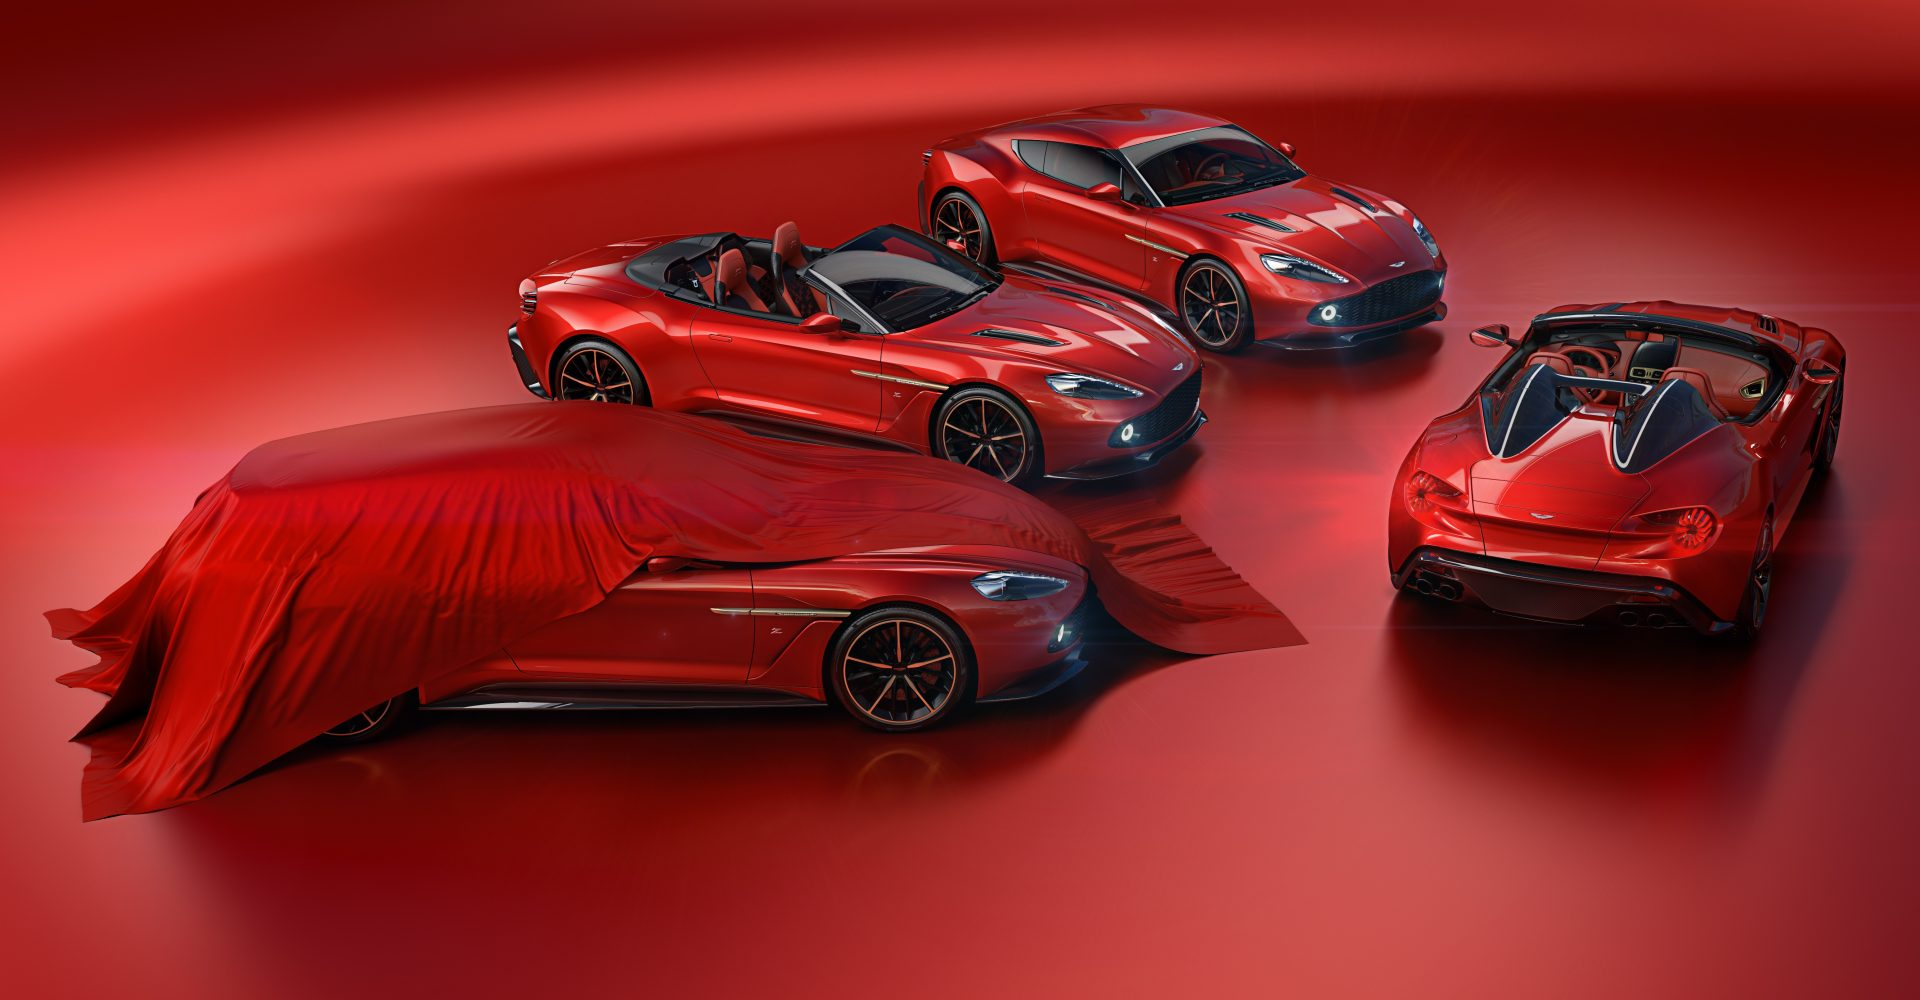 Aston Martin Vanquish Zagato family gets Speedster and Shooting Brake